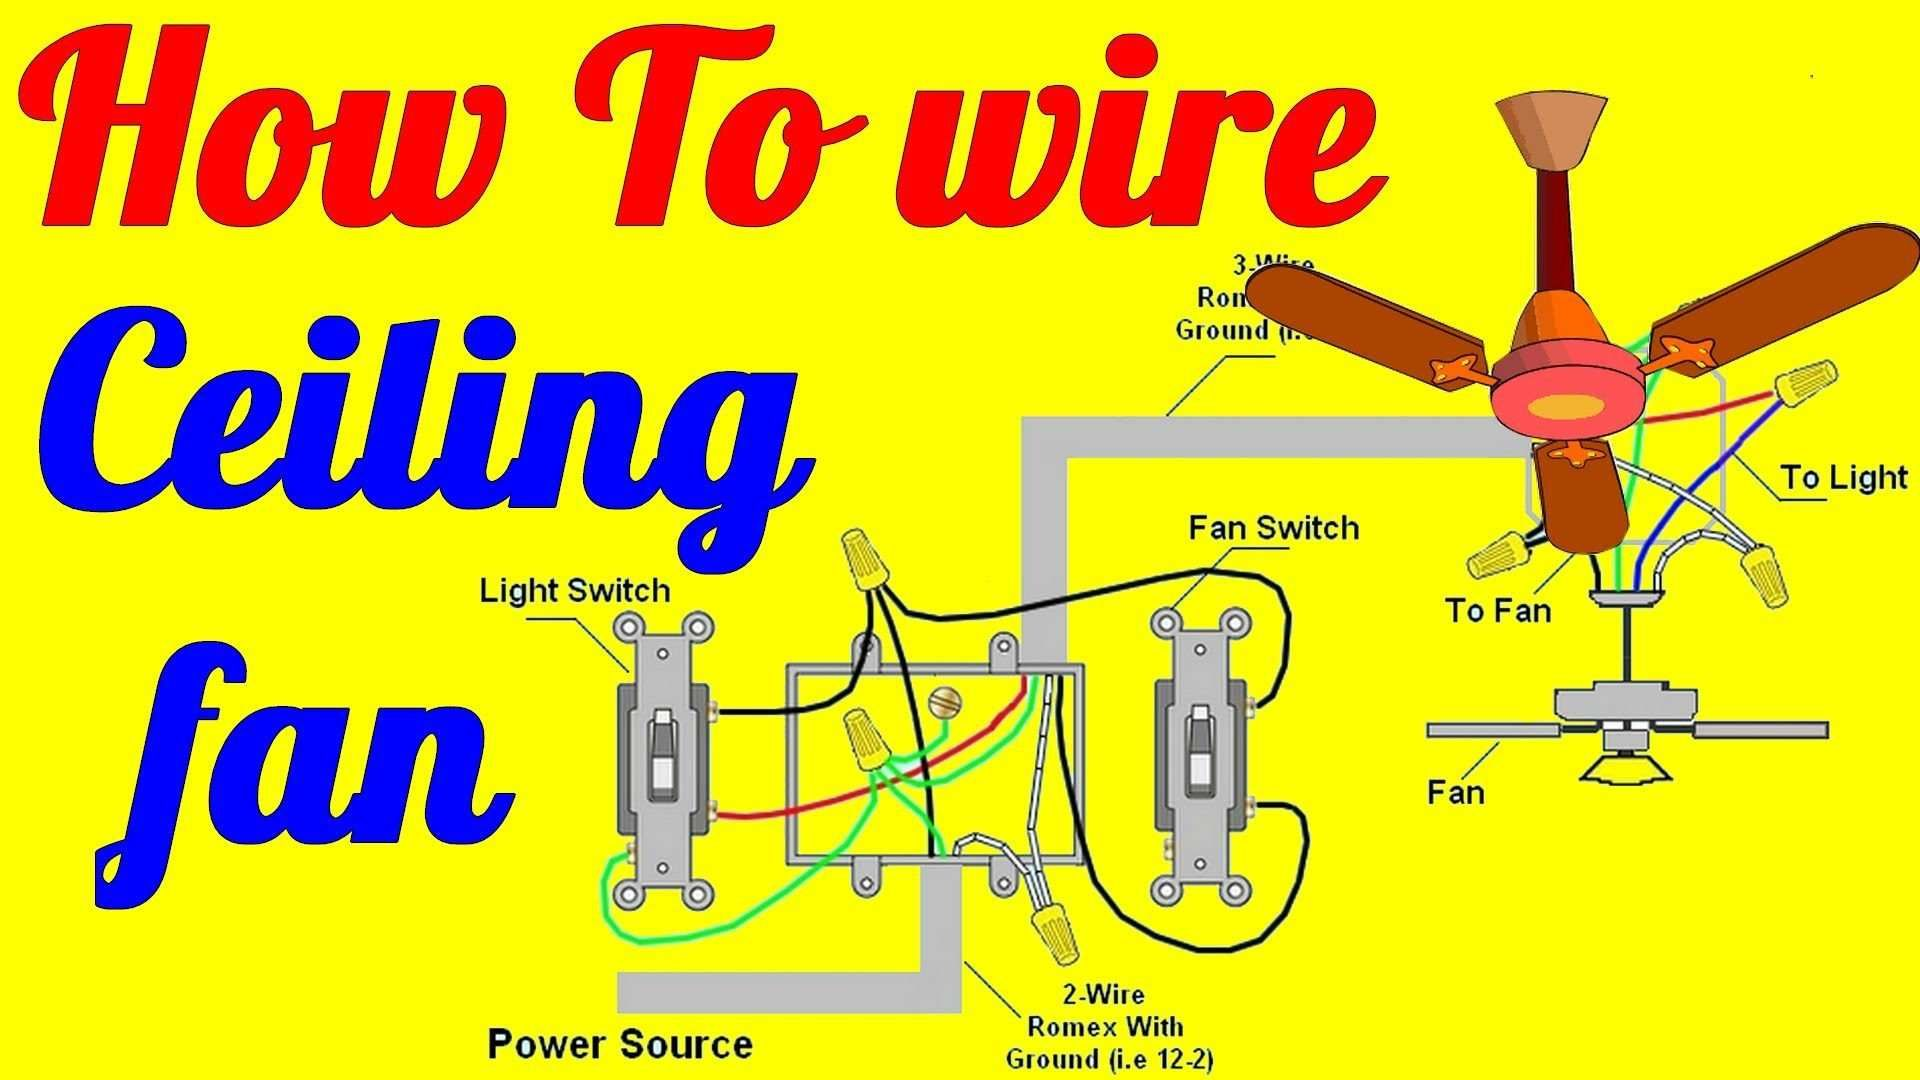 medium resolution of wiring diagram for hunter ceiling fan with light elegant how to wire ceiling fan with light switch youtube harboreze wiring